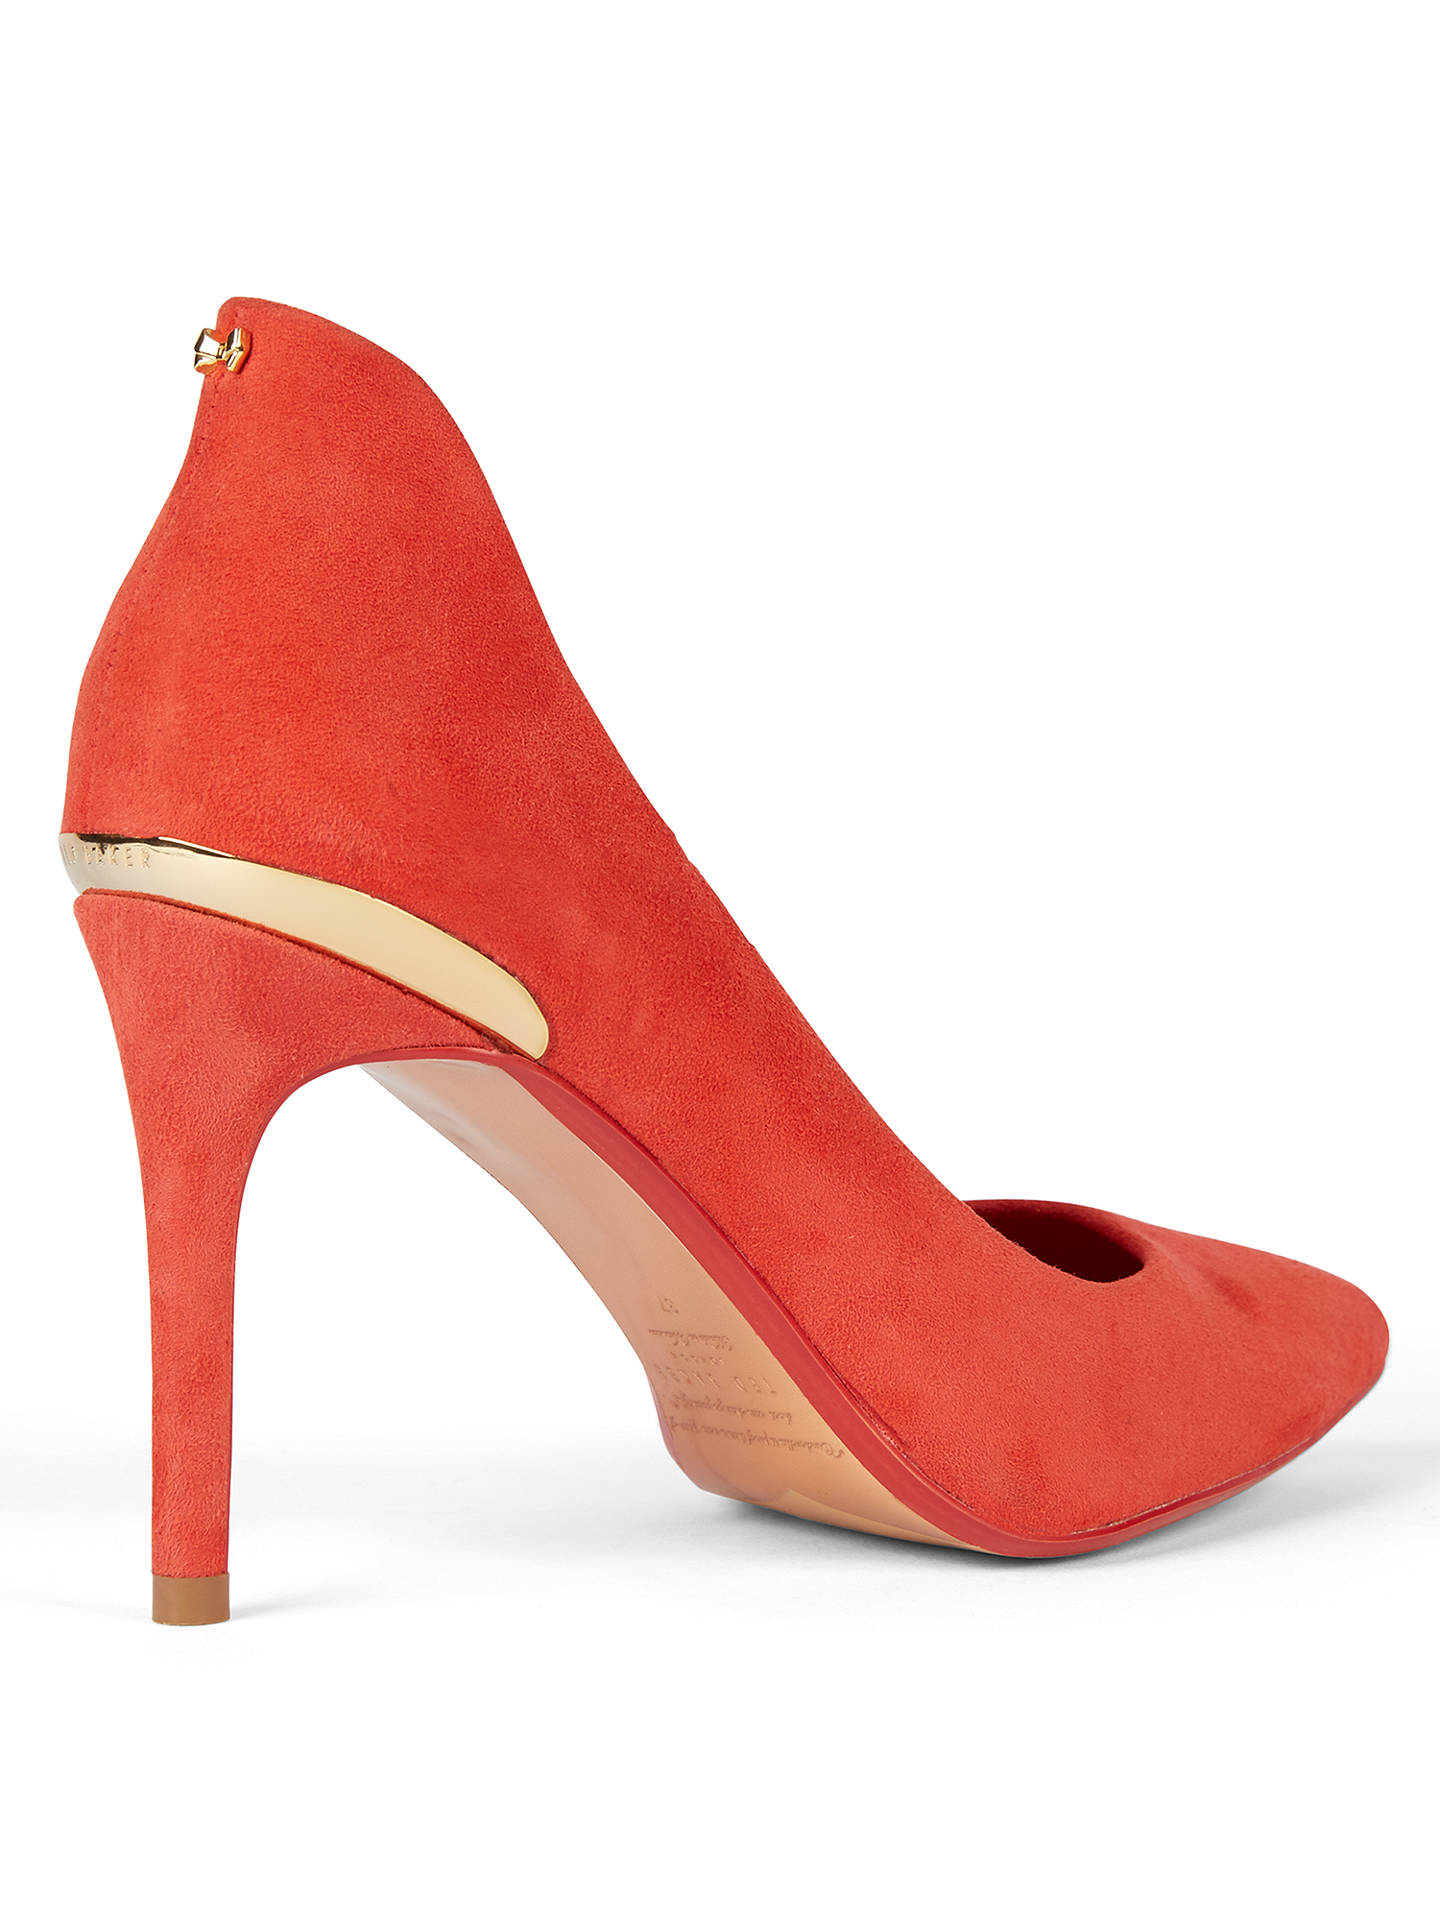 BuyTed Baker Saviy Pointed Toe Court Shoes, Red Suede, 5 Online at johnlewis.com